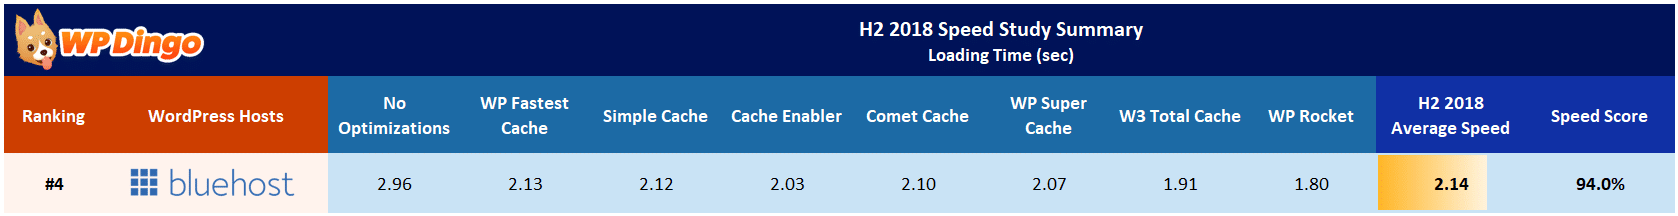 Bluehost Speed Test Results Table - Jul 2018 to Dec 2018